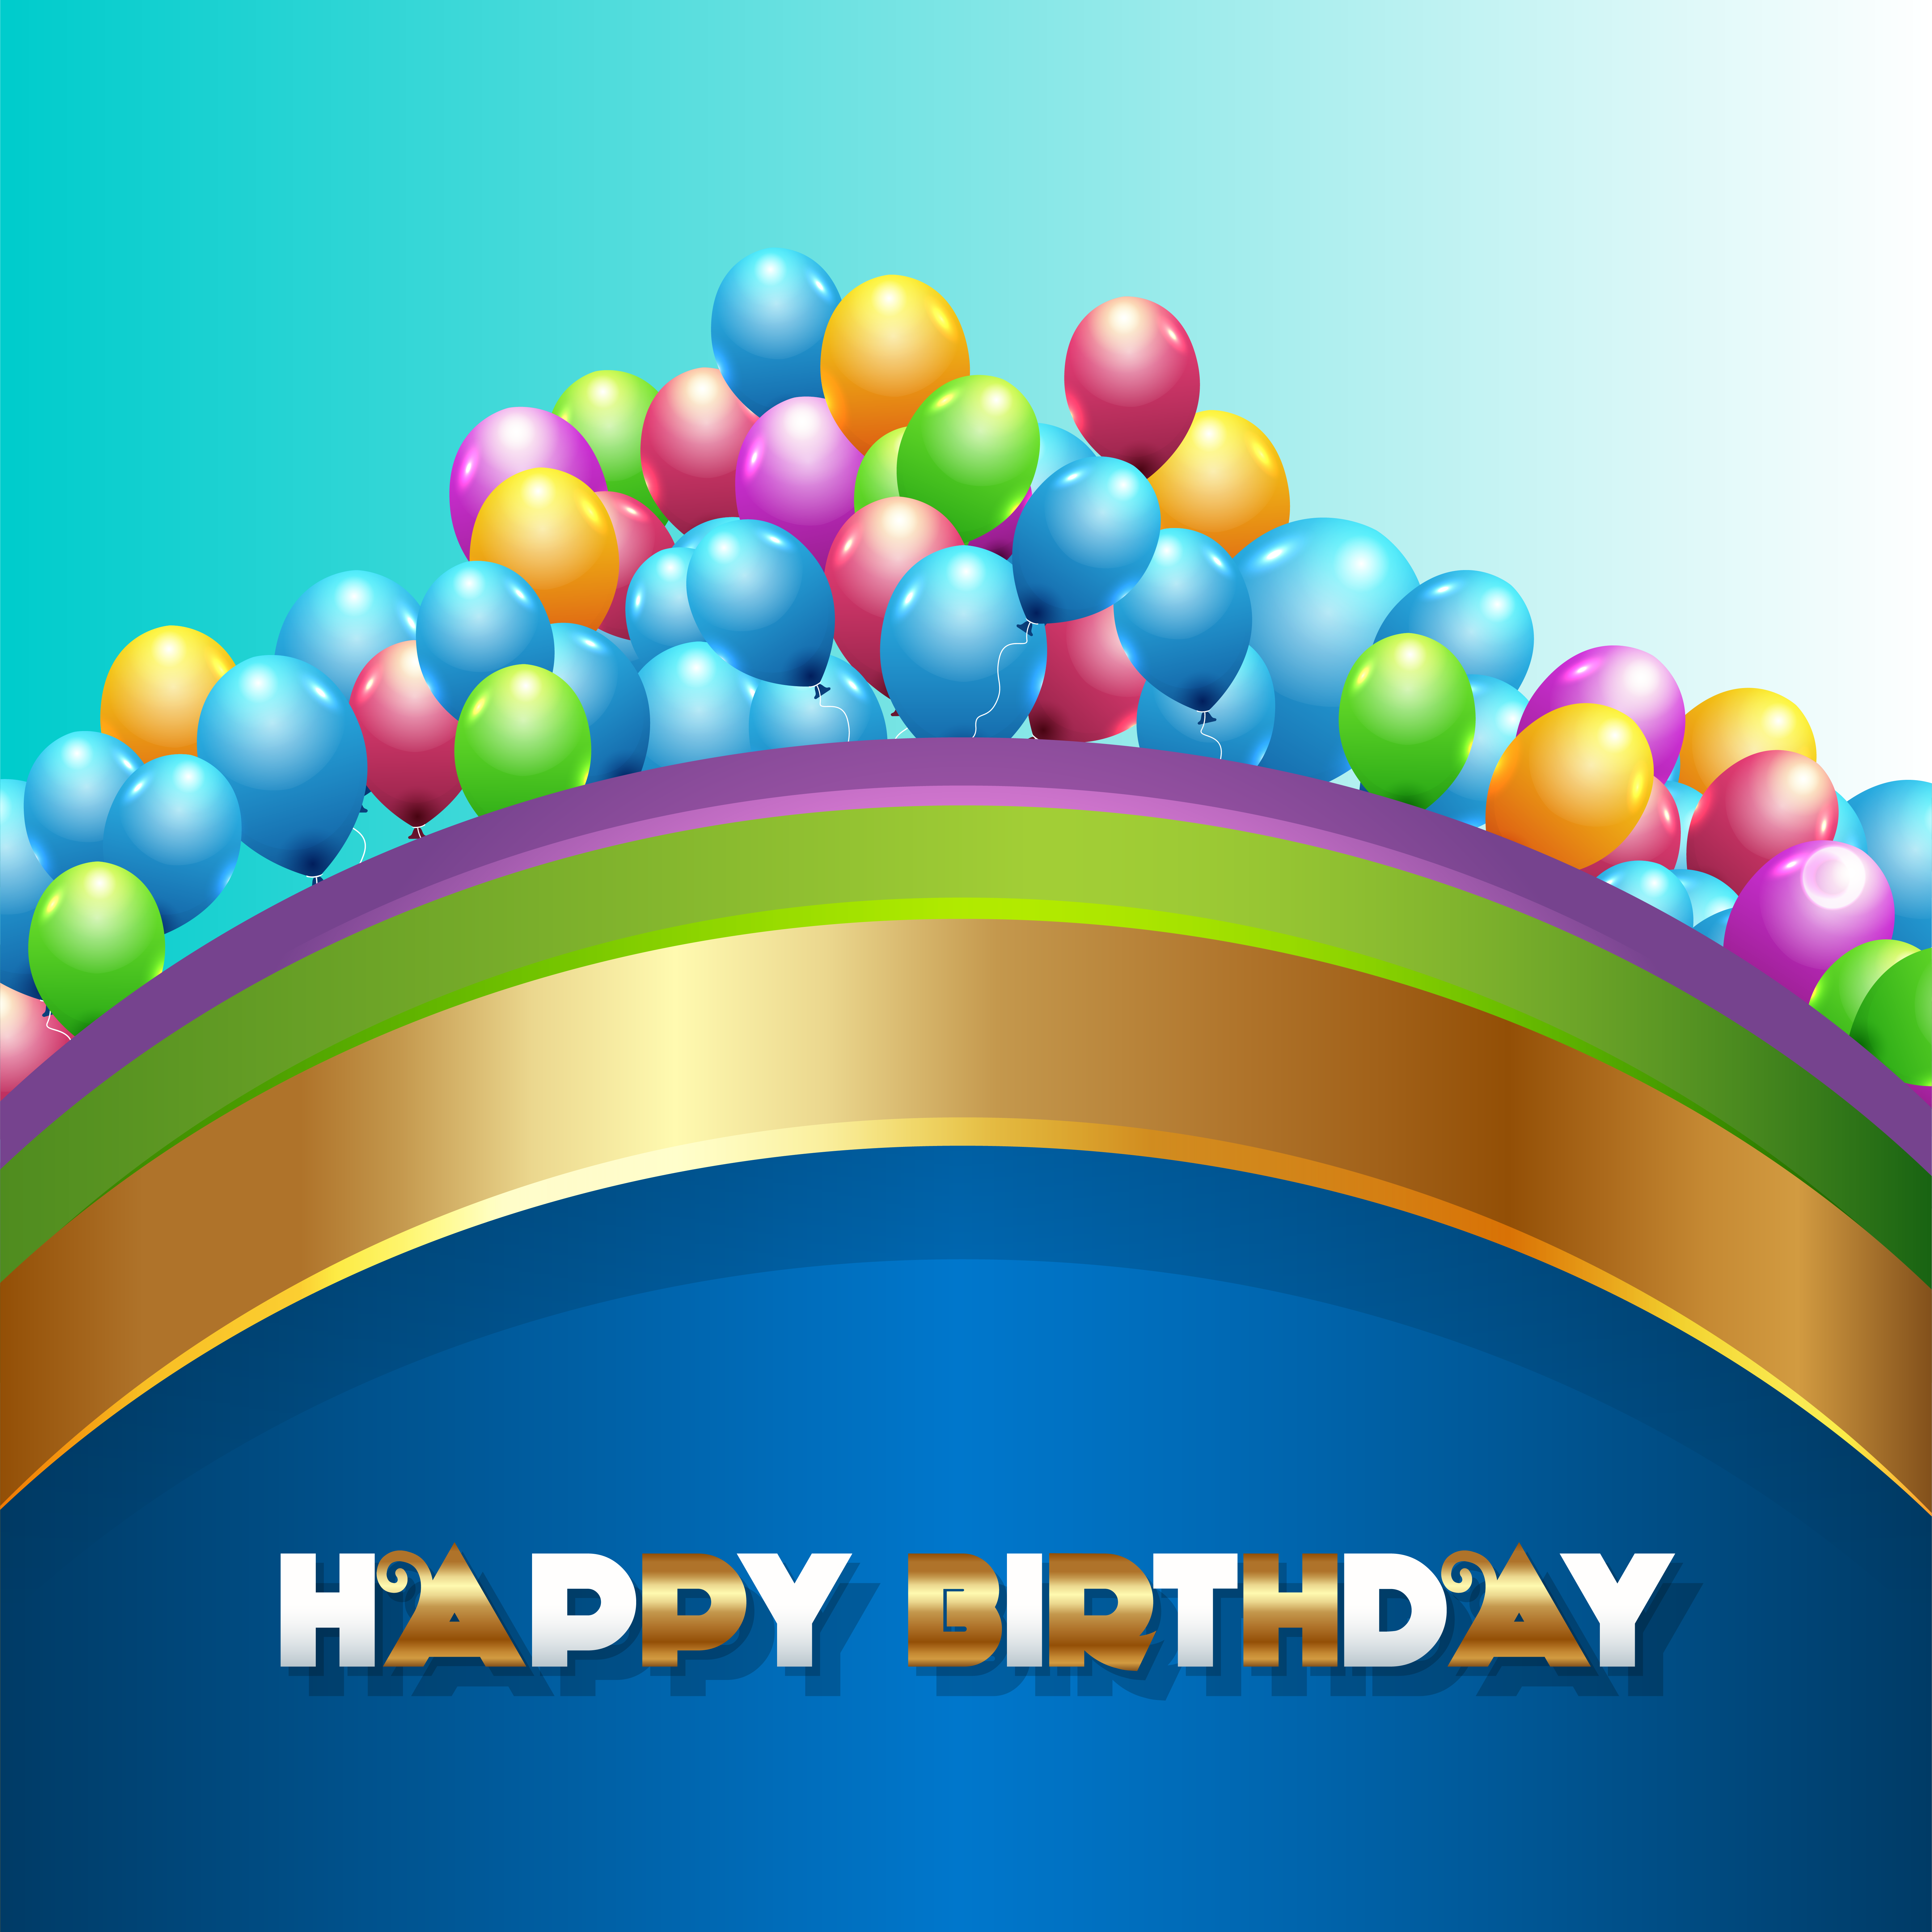 Blue Happy Birthday Background with Balloons.